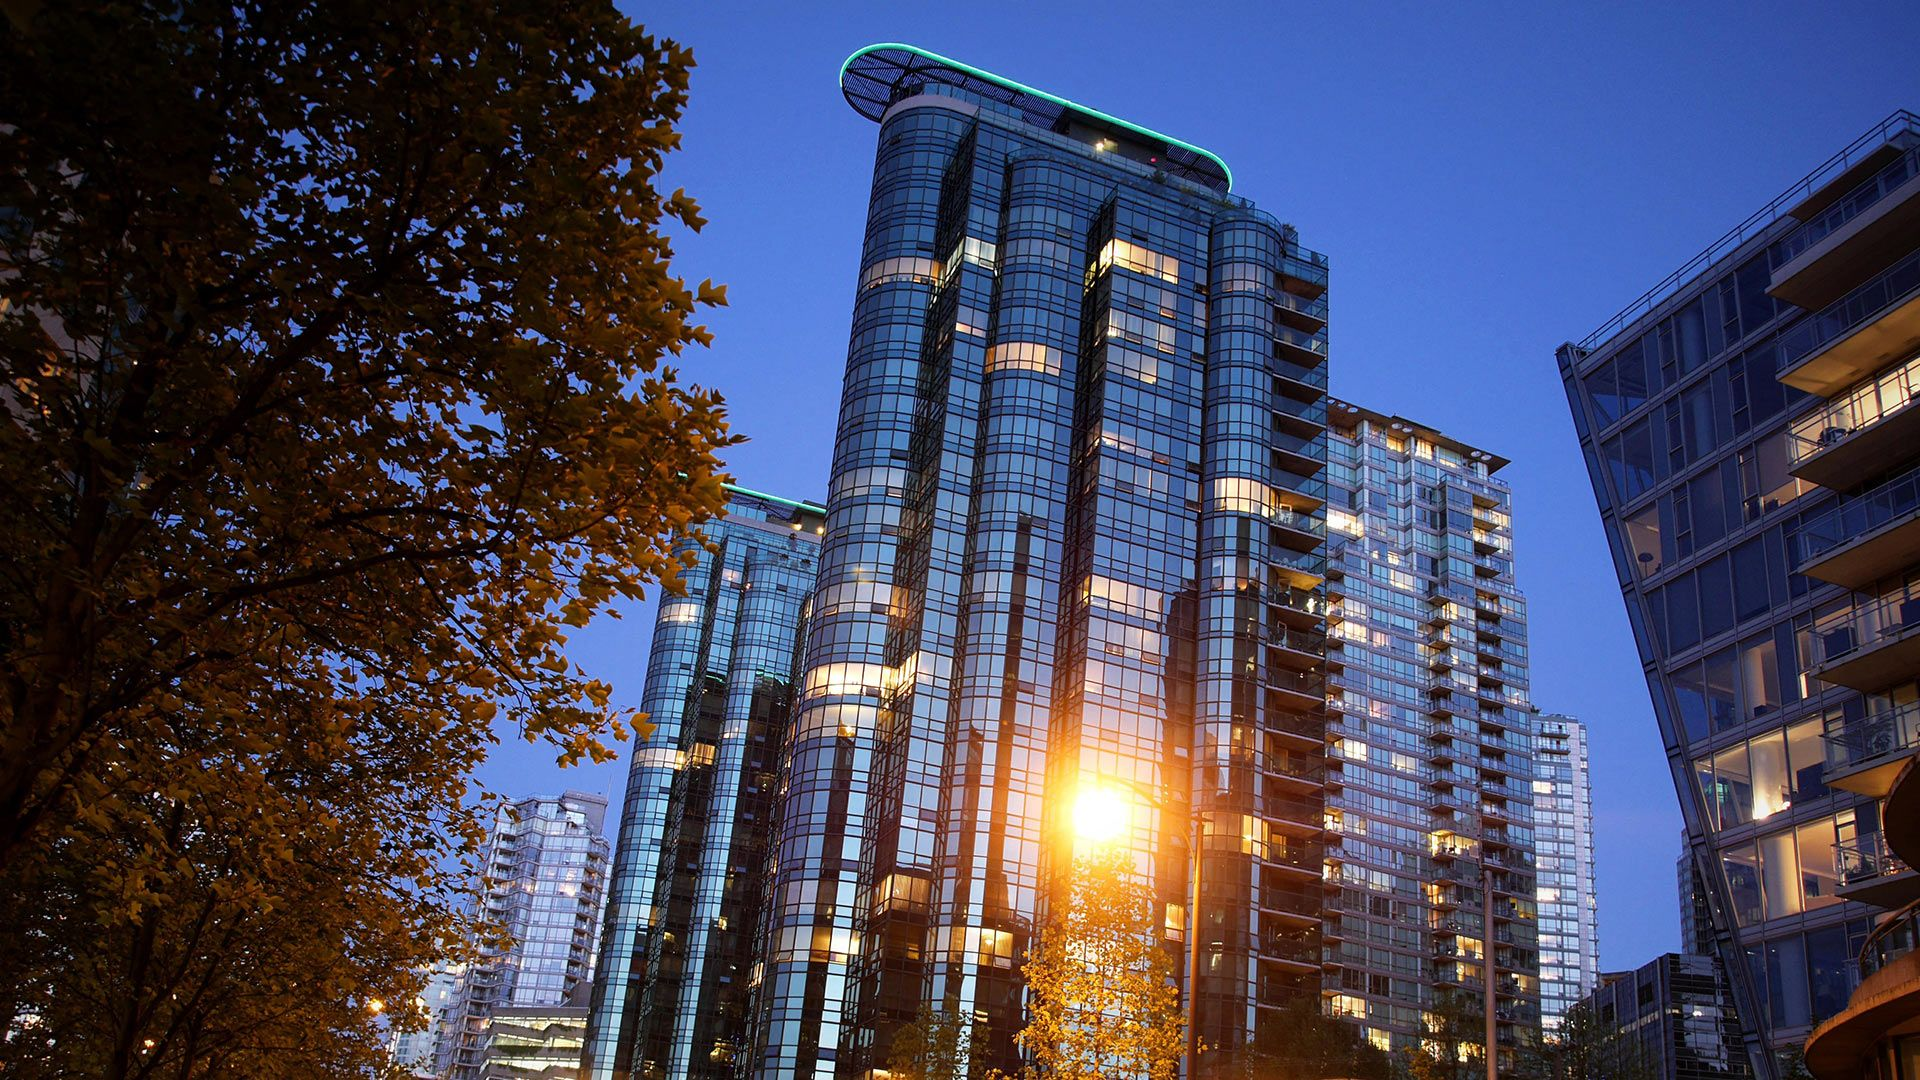 Main Photo: 700 1270 Bayshore Dr in Vancouver: Coal Harbour Condo for sale ()  : MLS®# MRP4873